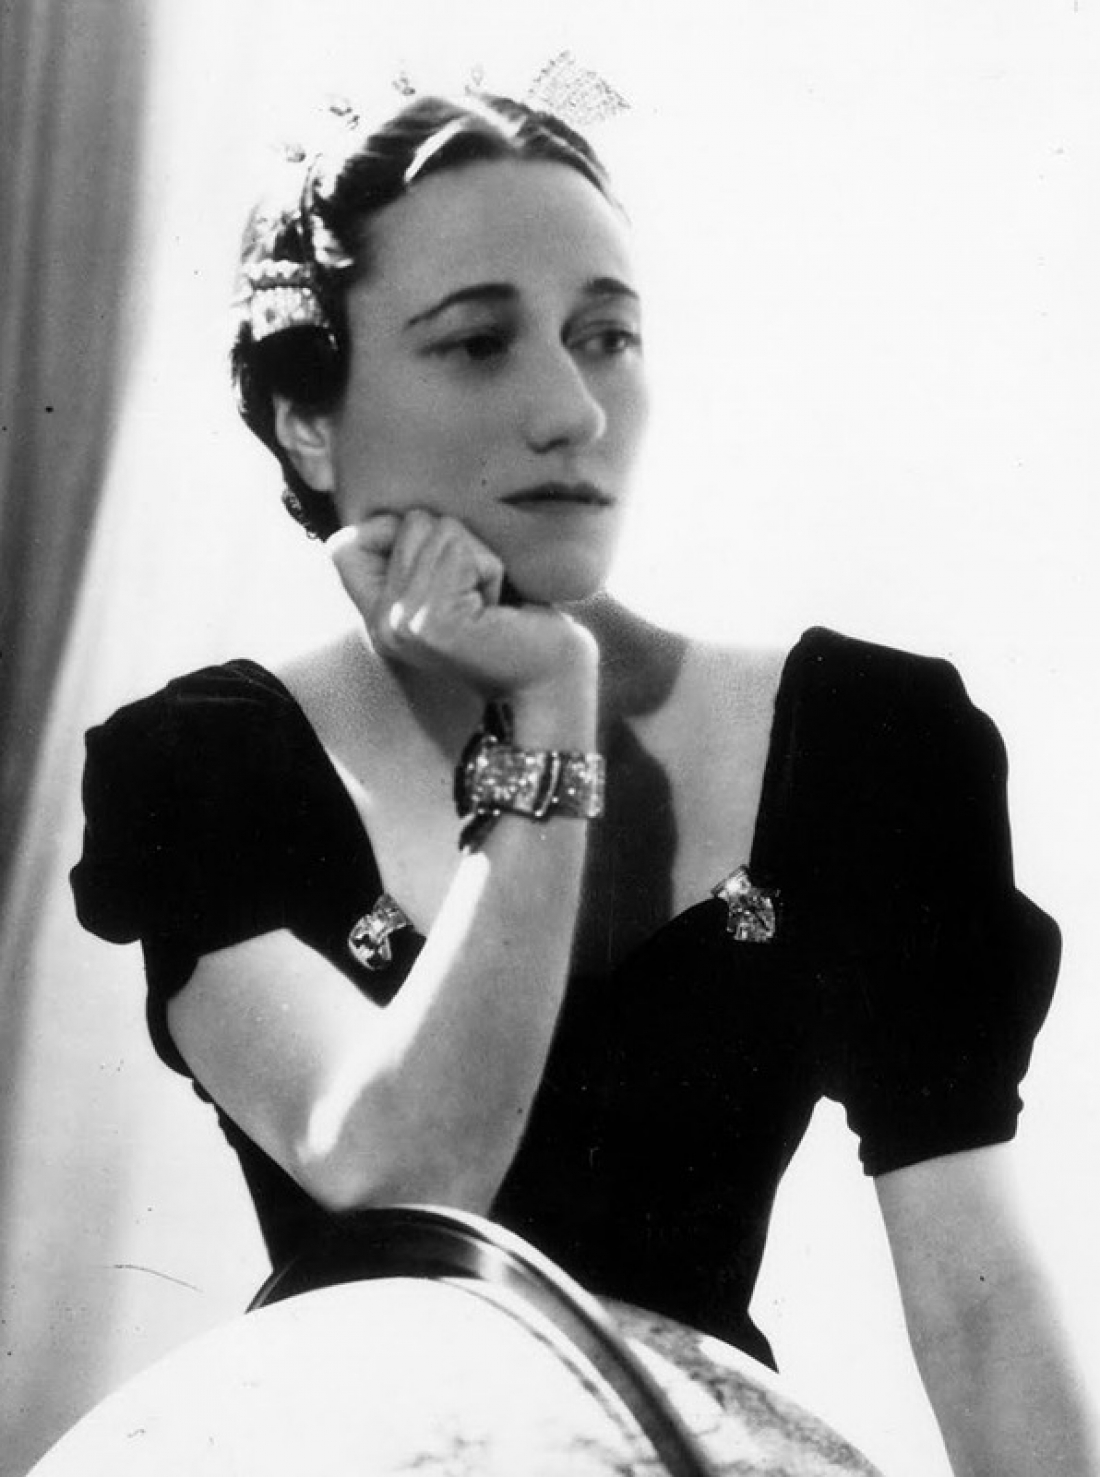 wallis simpson Find the perfect wallis simpson stock photos and editorial news pictures from getty images download premium images you can't get anywhere else.